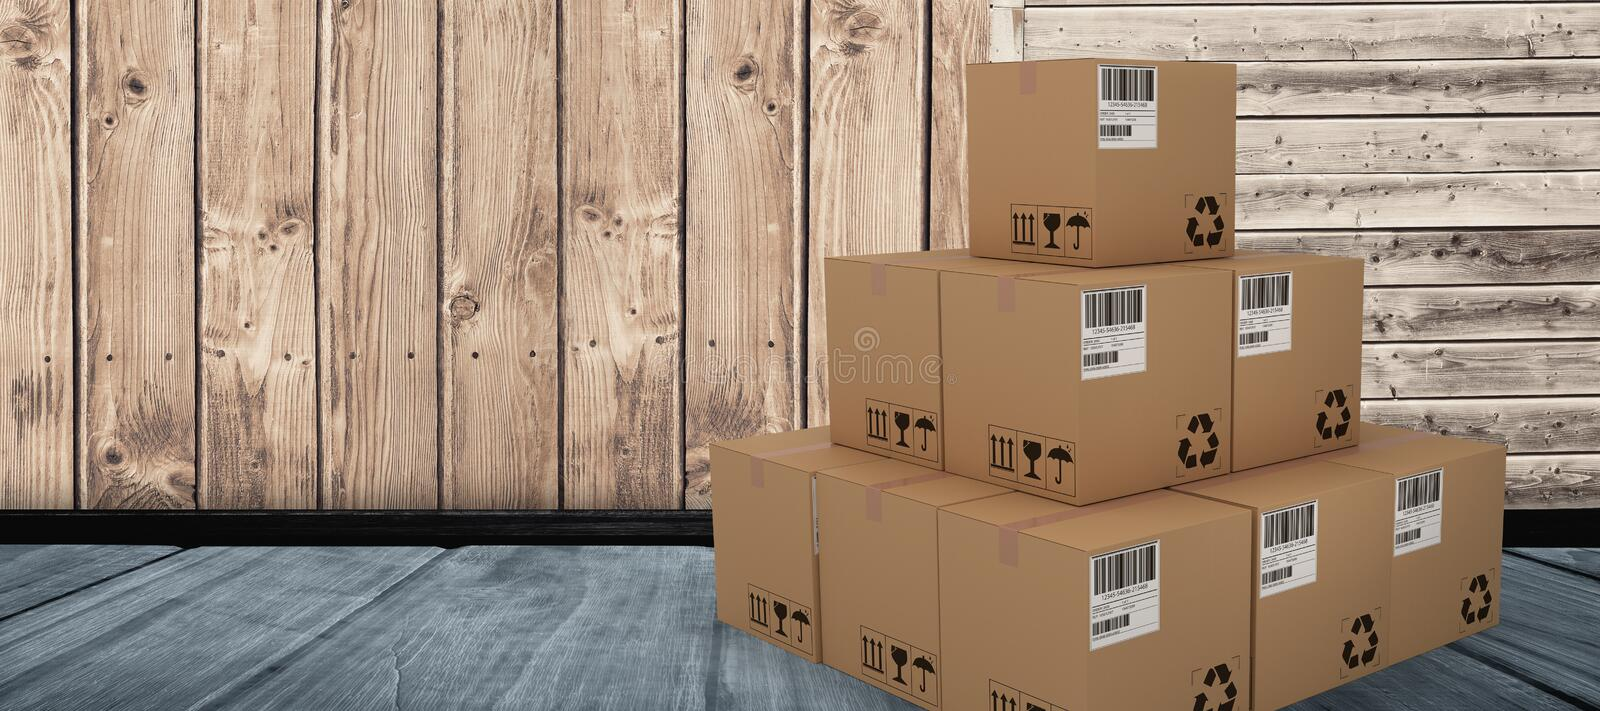 Composite 3d image of heap of packed cardboard boxes. Heap of packed cardboard 3D boxes against wooden floor stock illustration